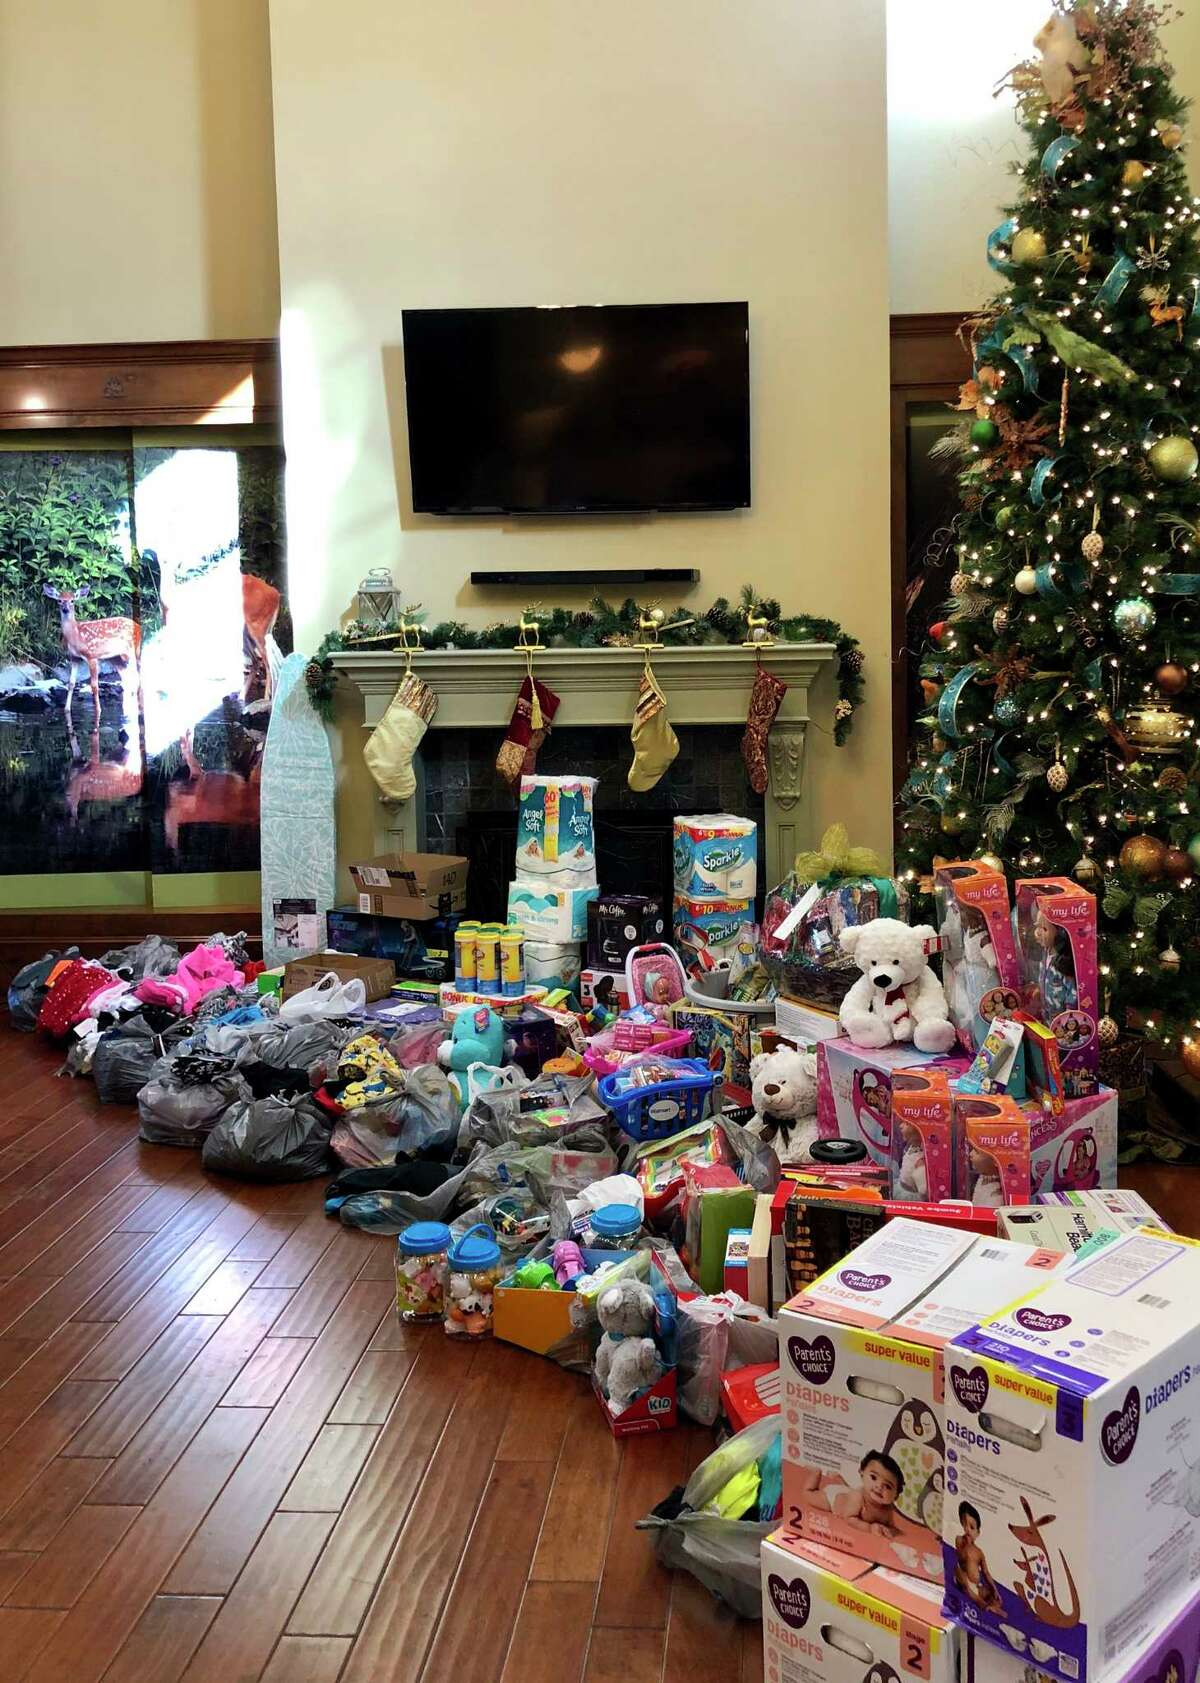 After being approached by local teens, the Woodforest community went all out collecting clothes, household supplies, diapers and much more for the Montgomery County WomenÂ?'s Center.